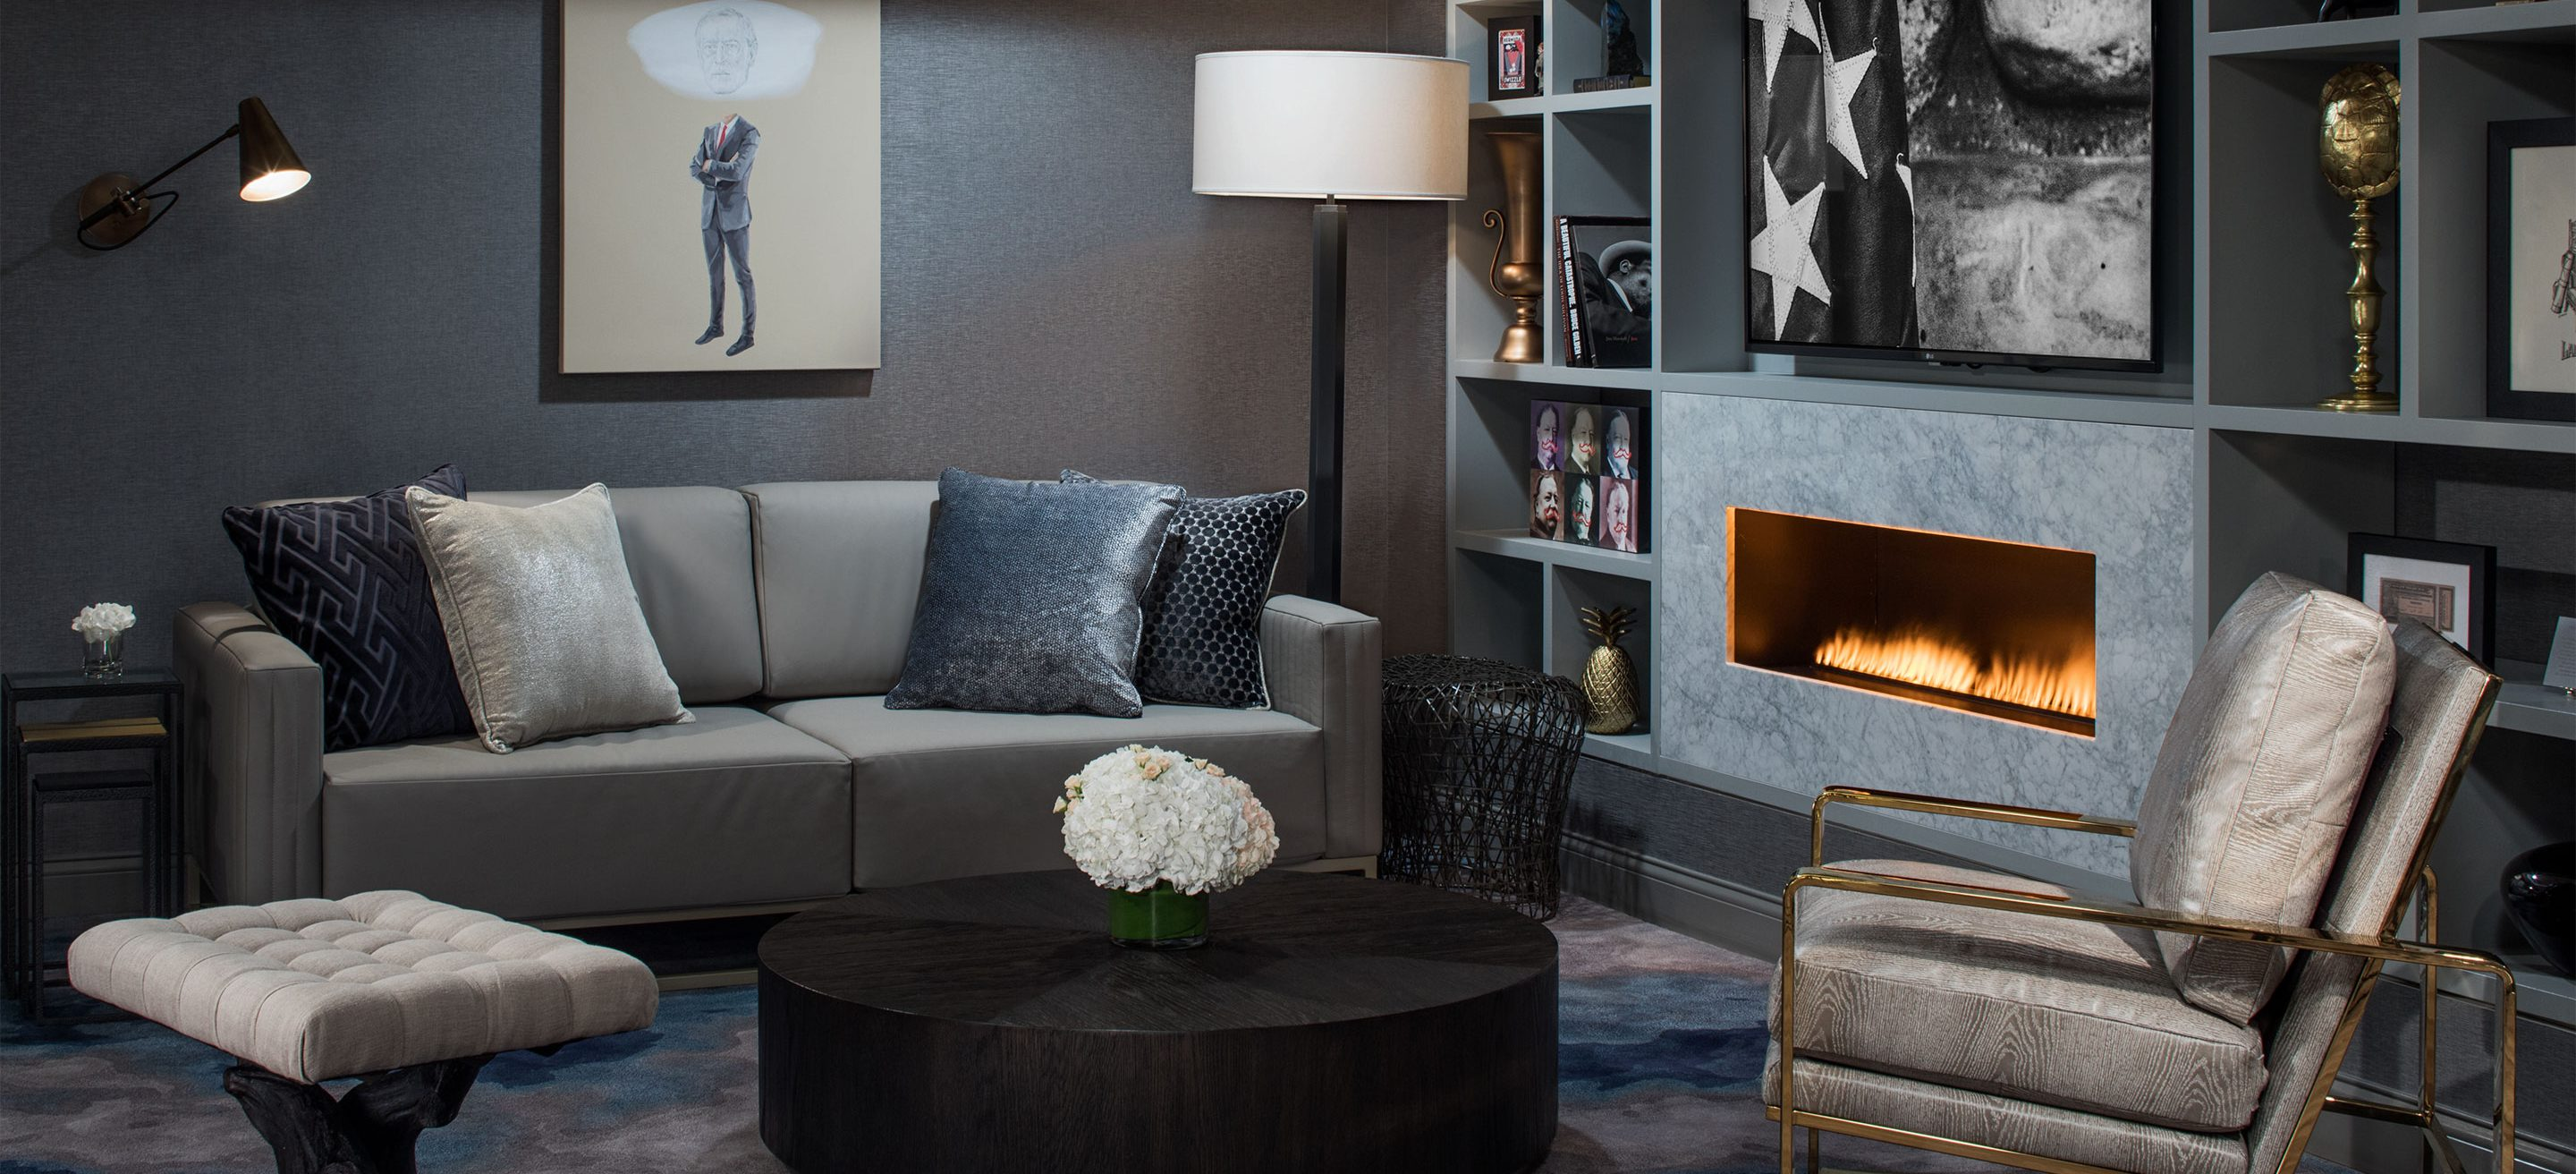 luxury hotel interior design the blackstone hotel in chicago gettys